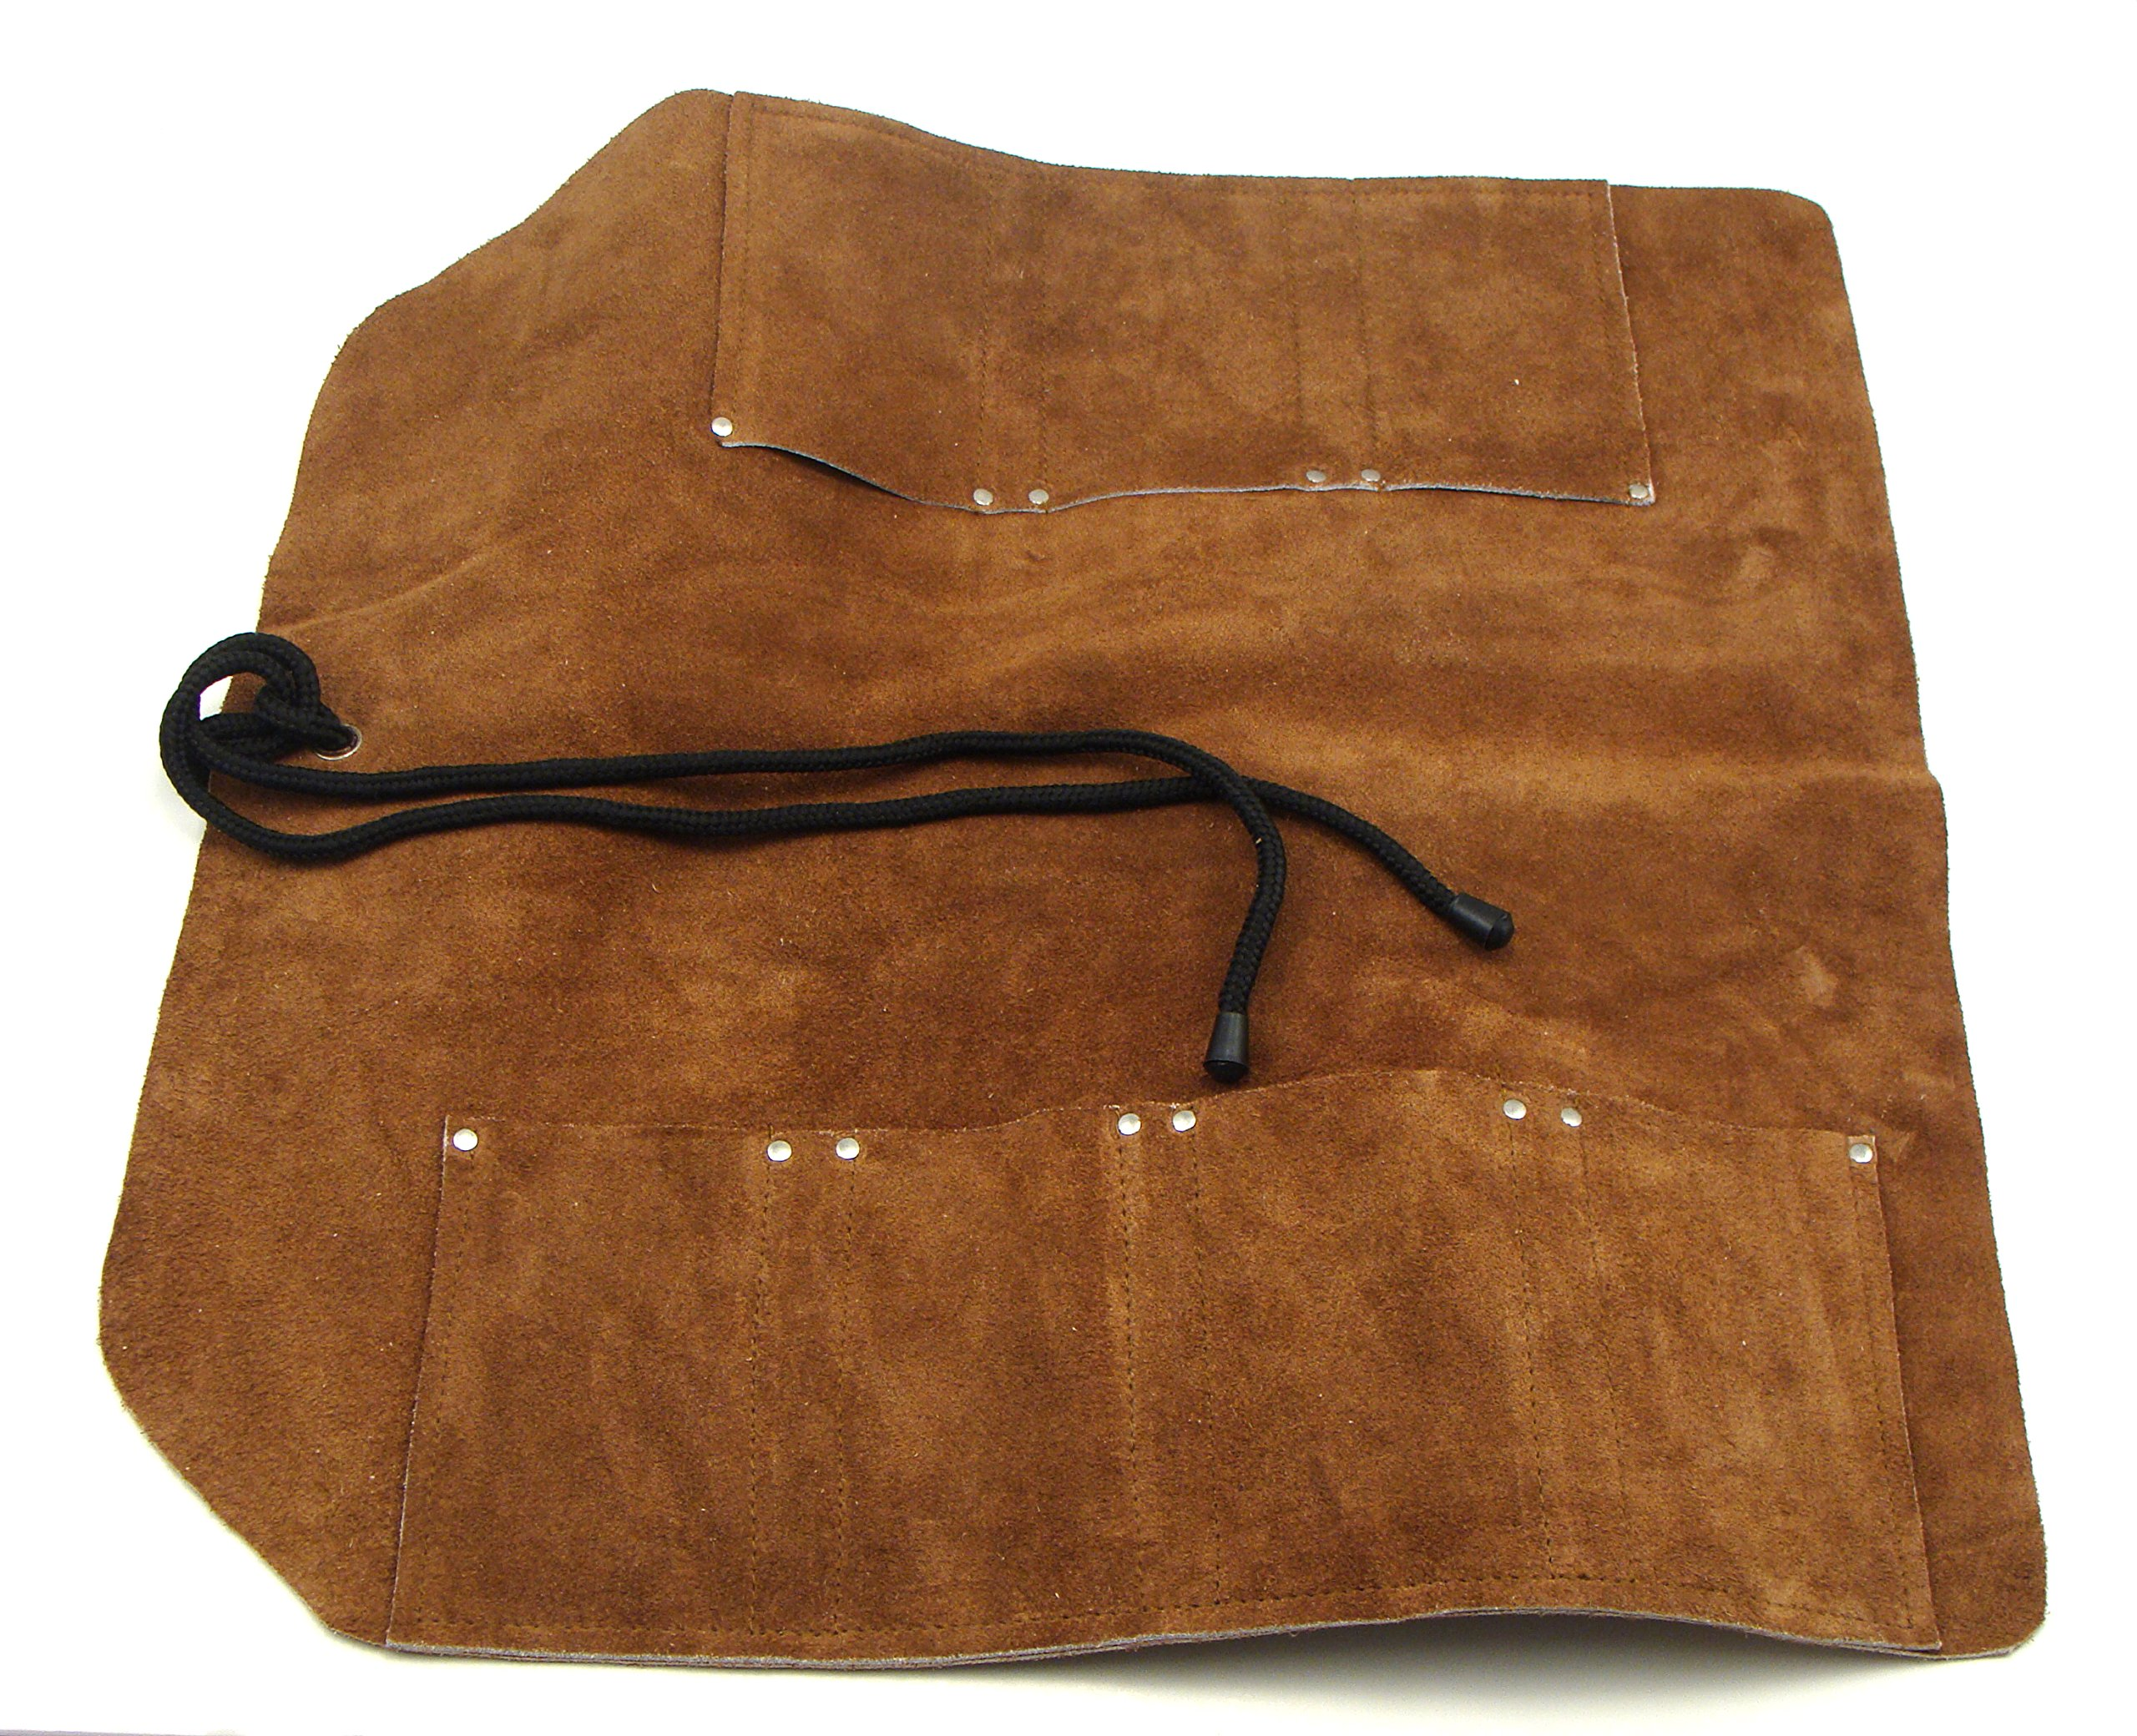 7 Pocket Suede Leather Tool Roll for Larger Wood Chisels, Kitchen Knives, Woodcarving Tools, Wrenches, Screwdrivers